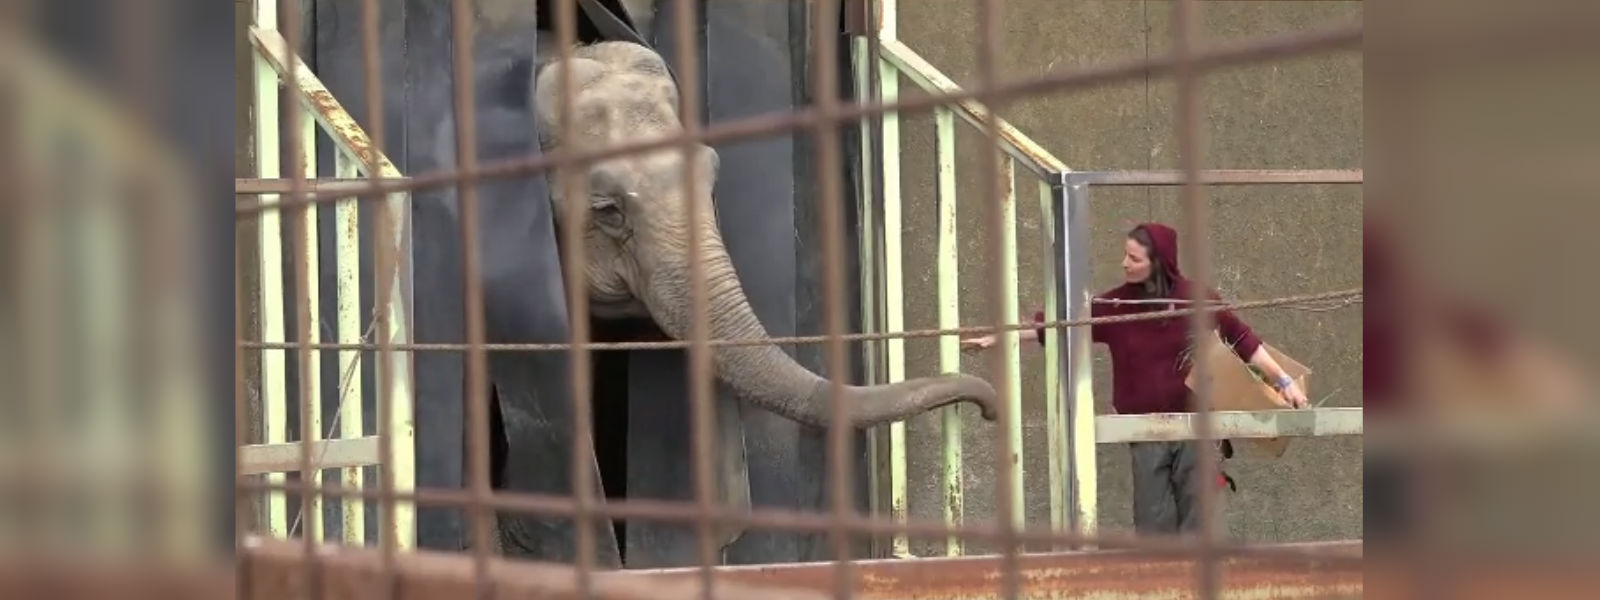 Rescued elephant flying from Chile to Brazil to live out her days in sanctuary